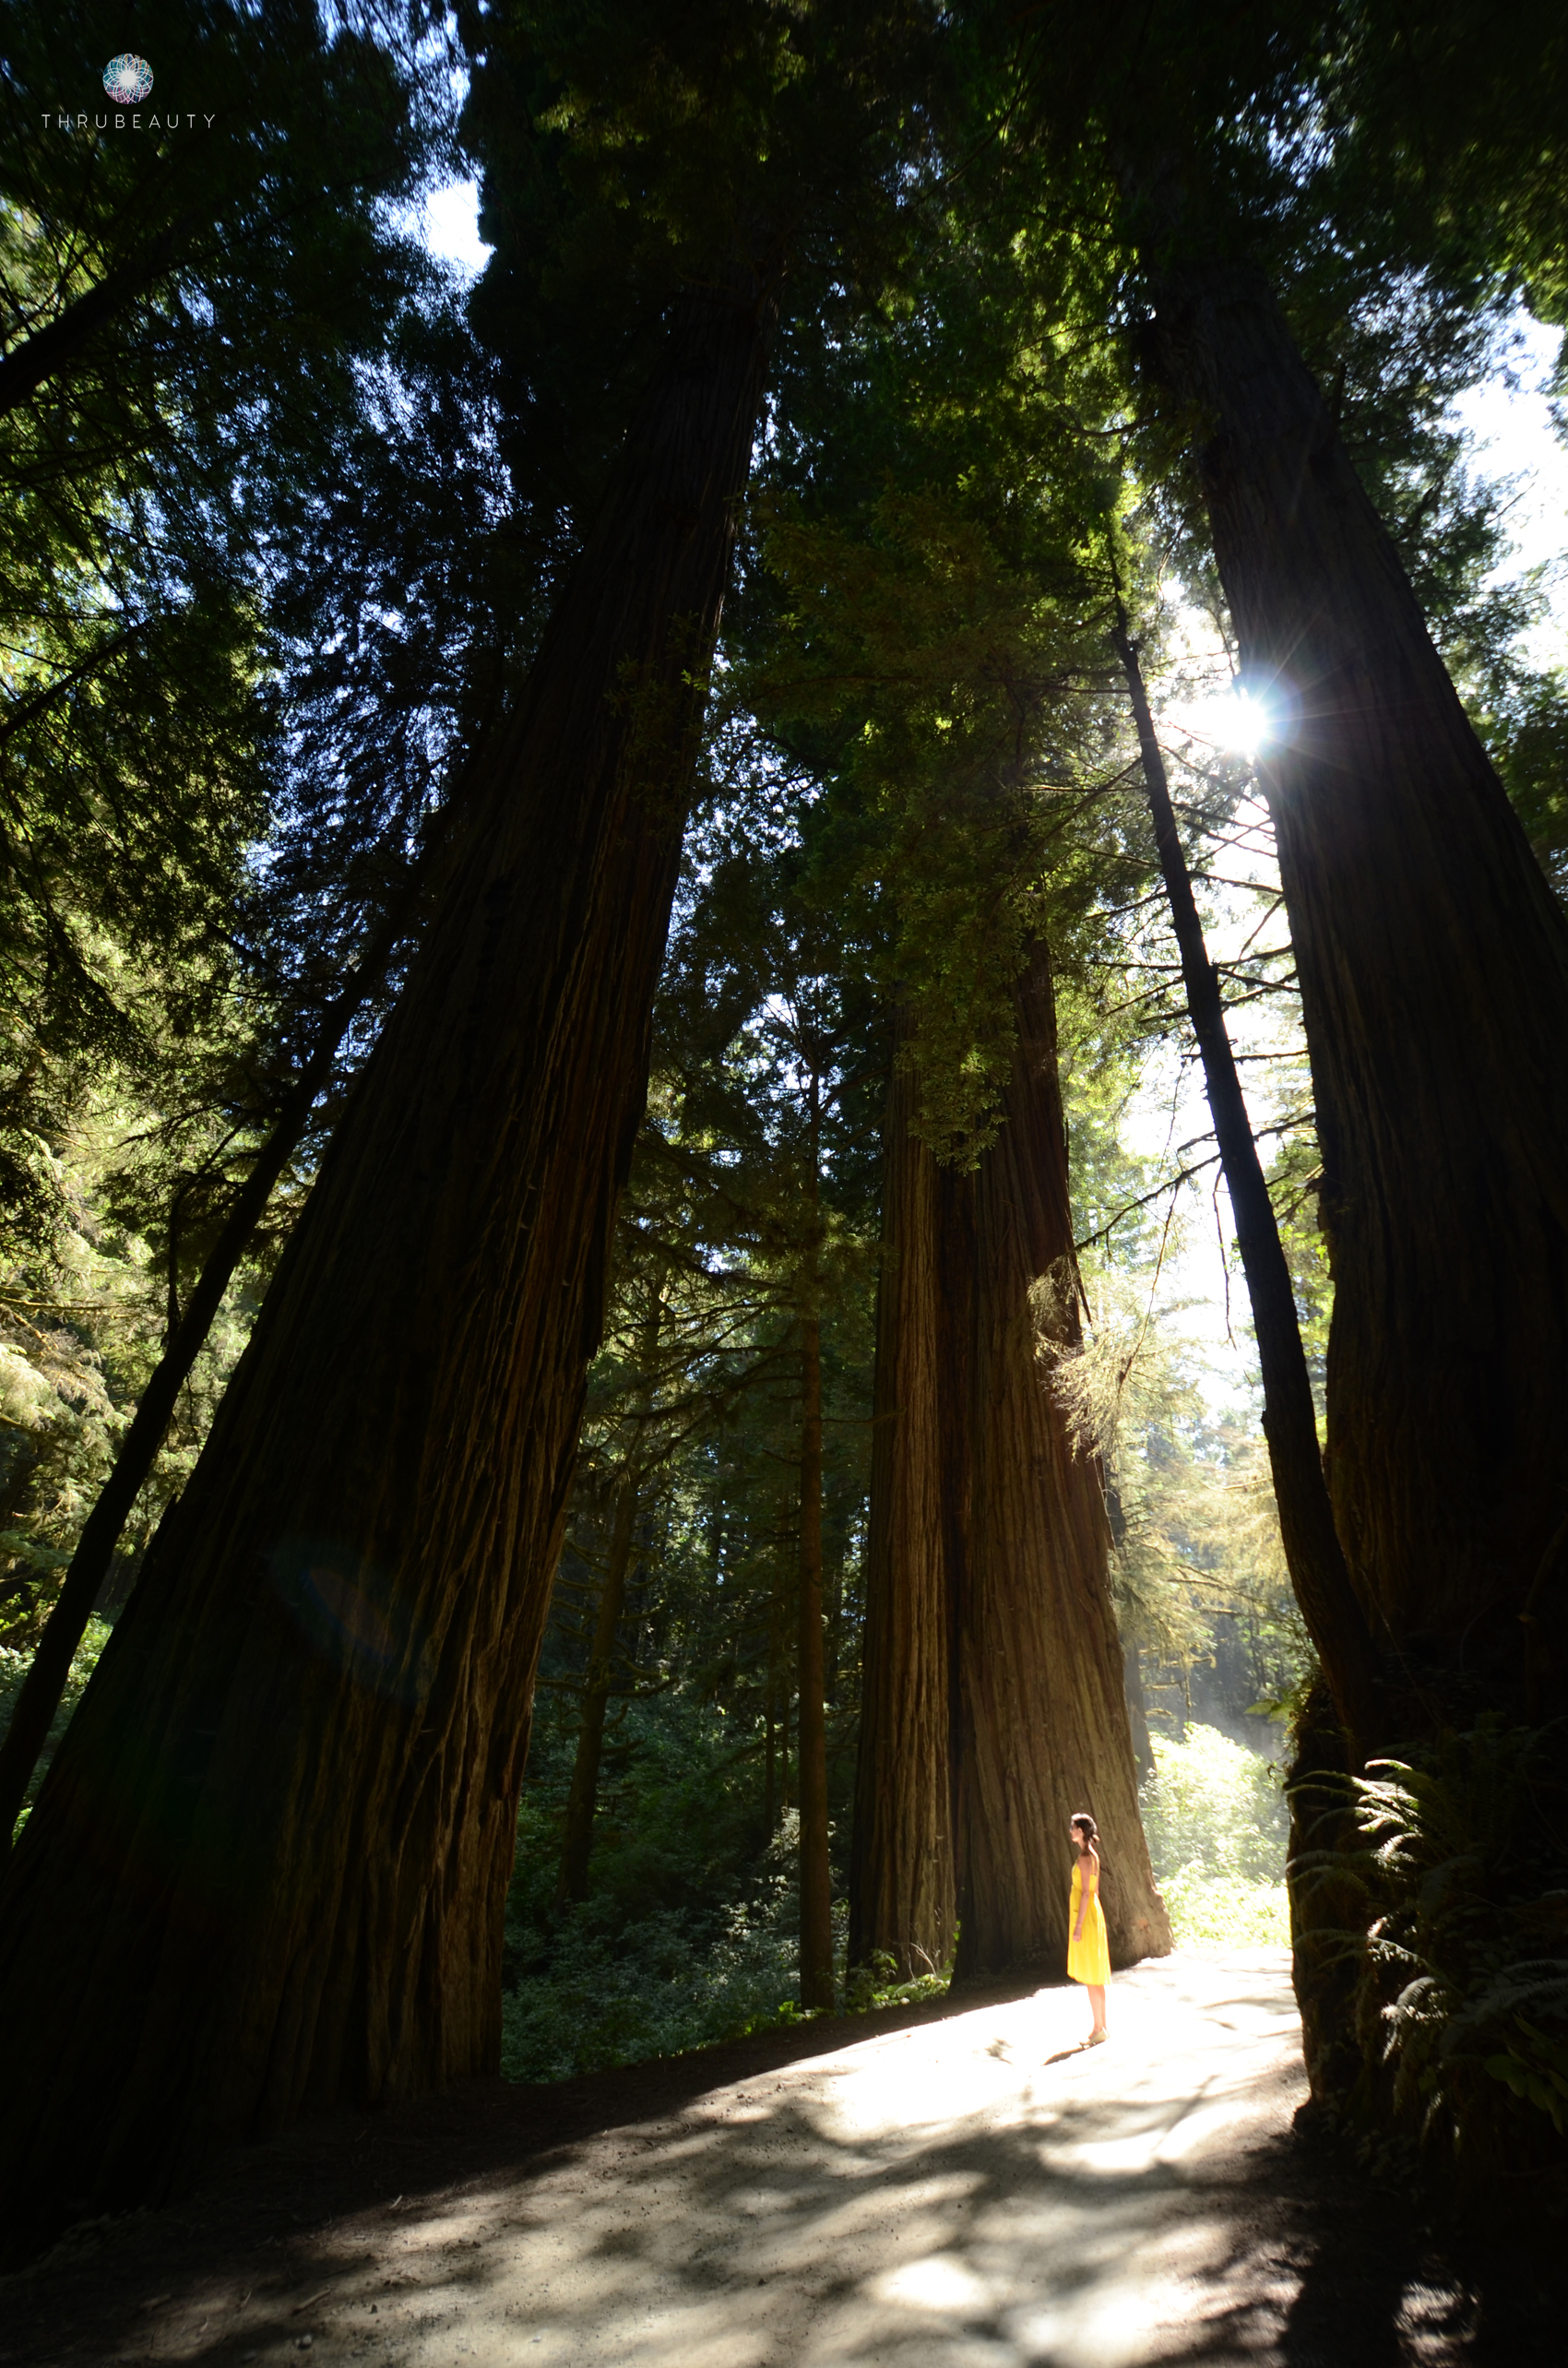 Standing in awe of the Redwoods